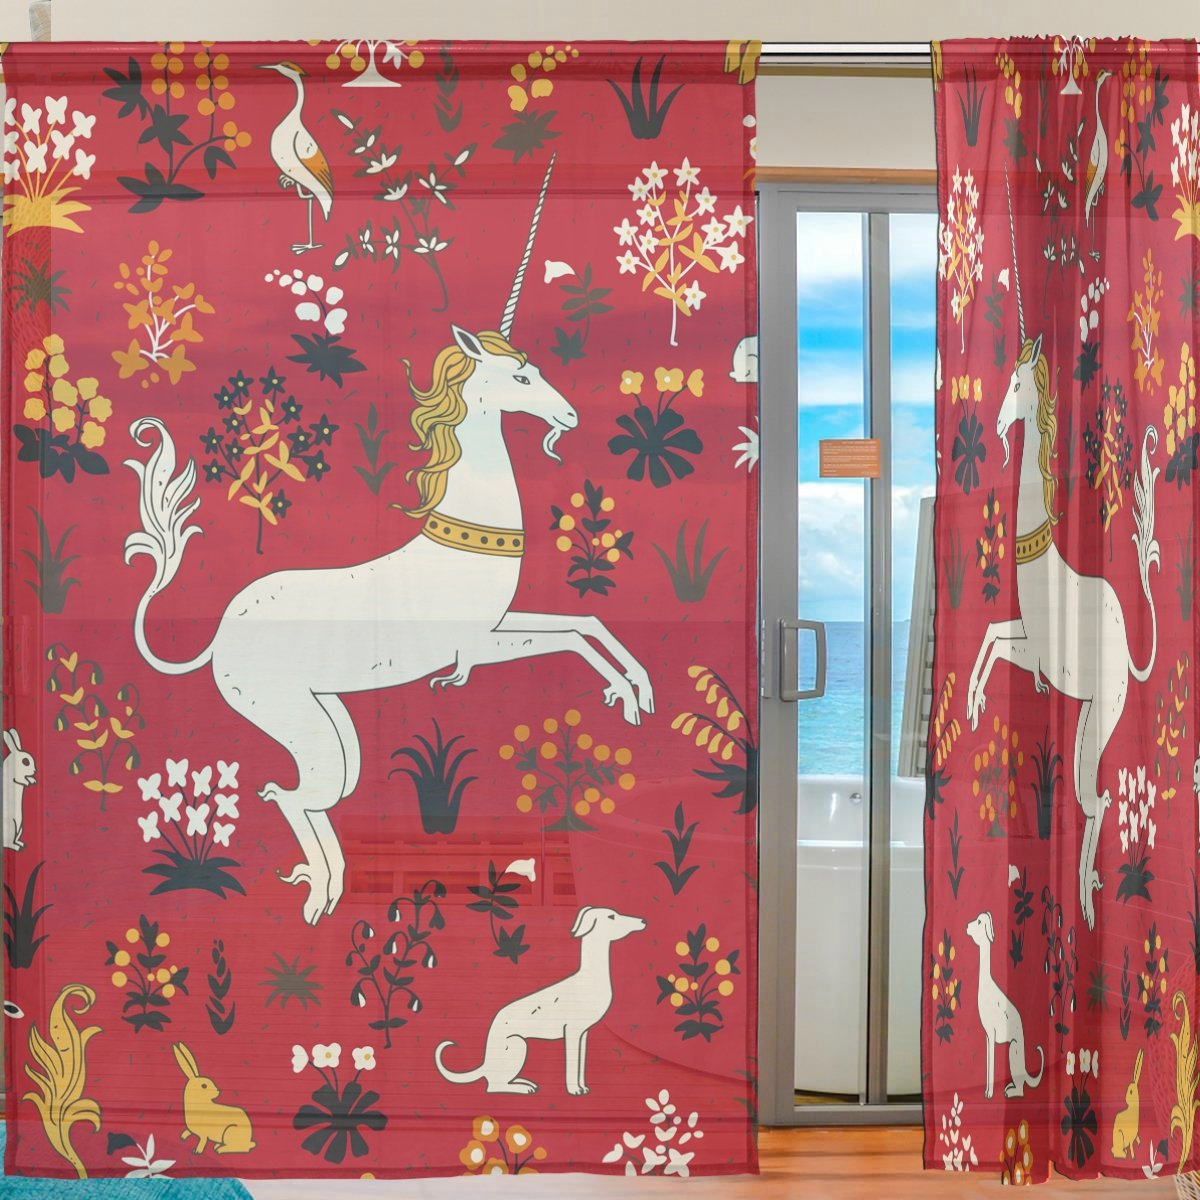 SEULIFE Window Sheer Curtain, Vintage Animal Unicorn Rabbit Flower Voile Curtain Drapes for Door Kitchen Living Room Bedroom 55x78 inches 2 Panels by SEULIFE (Image #2)